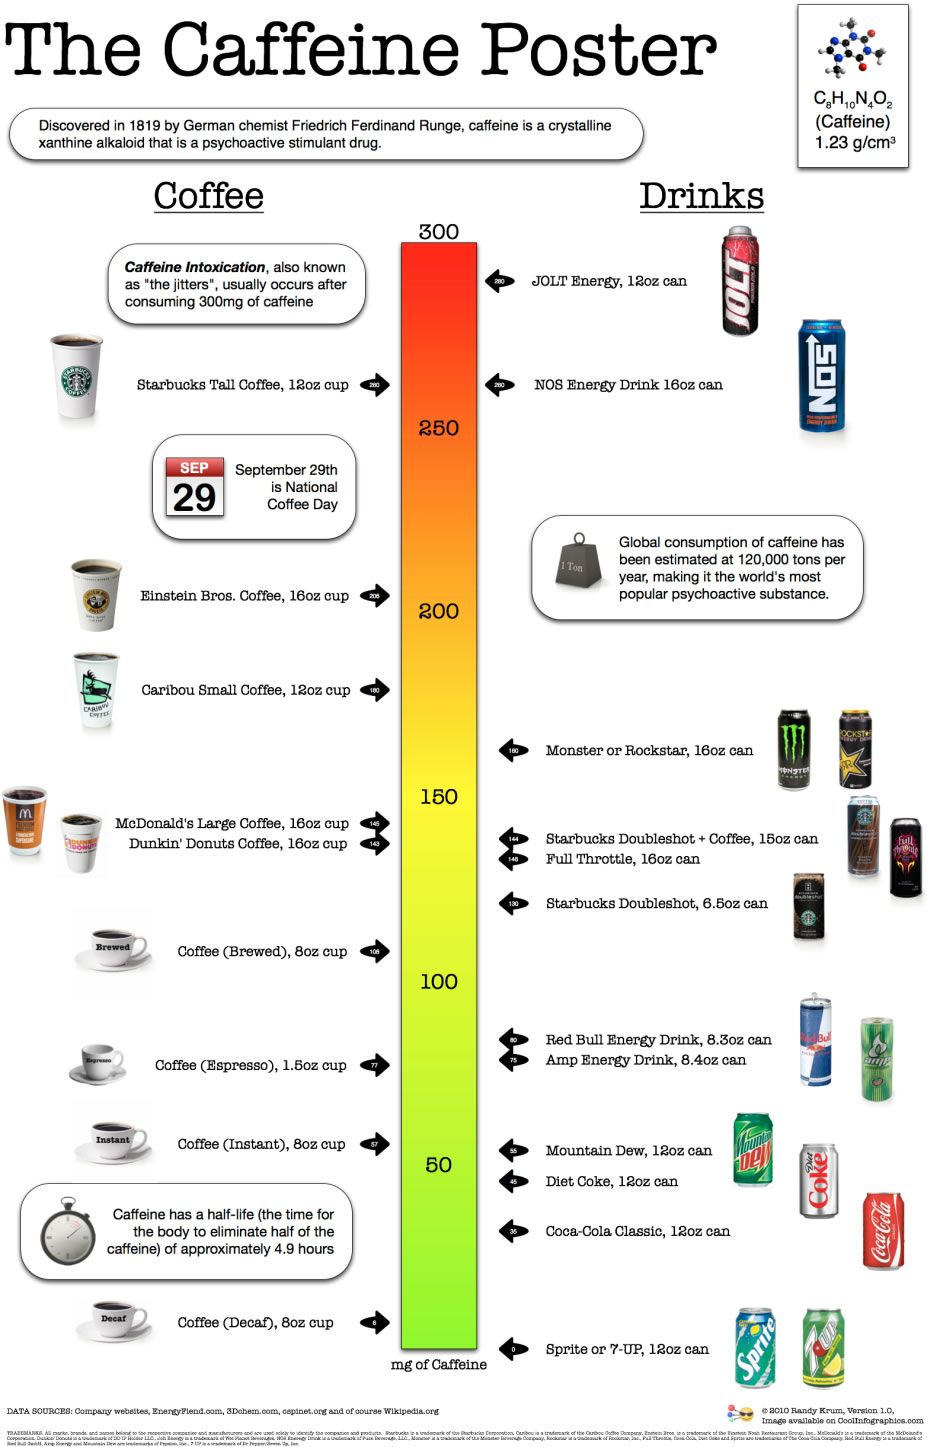 Quick chart compare caffeine amounts so i know how much caffeine